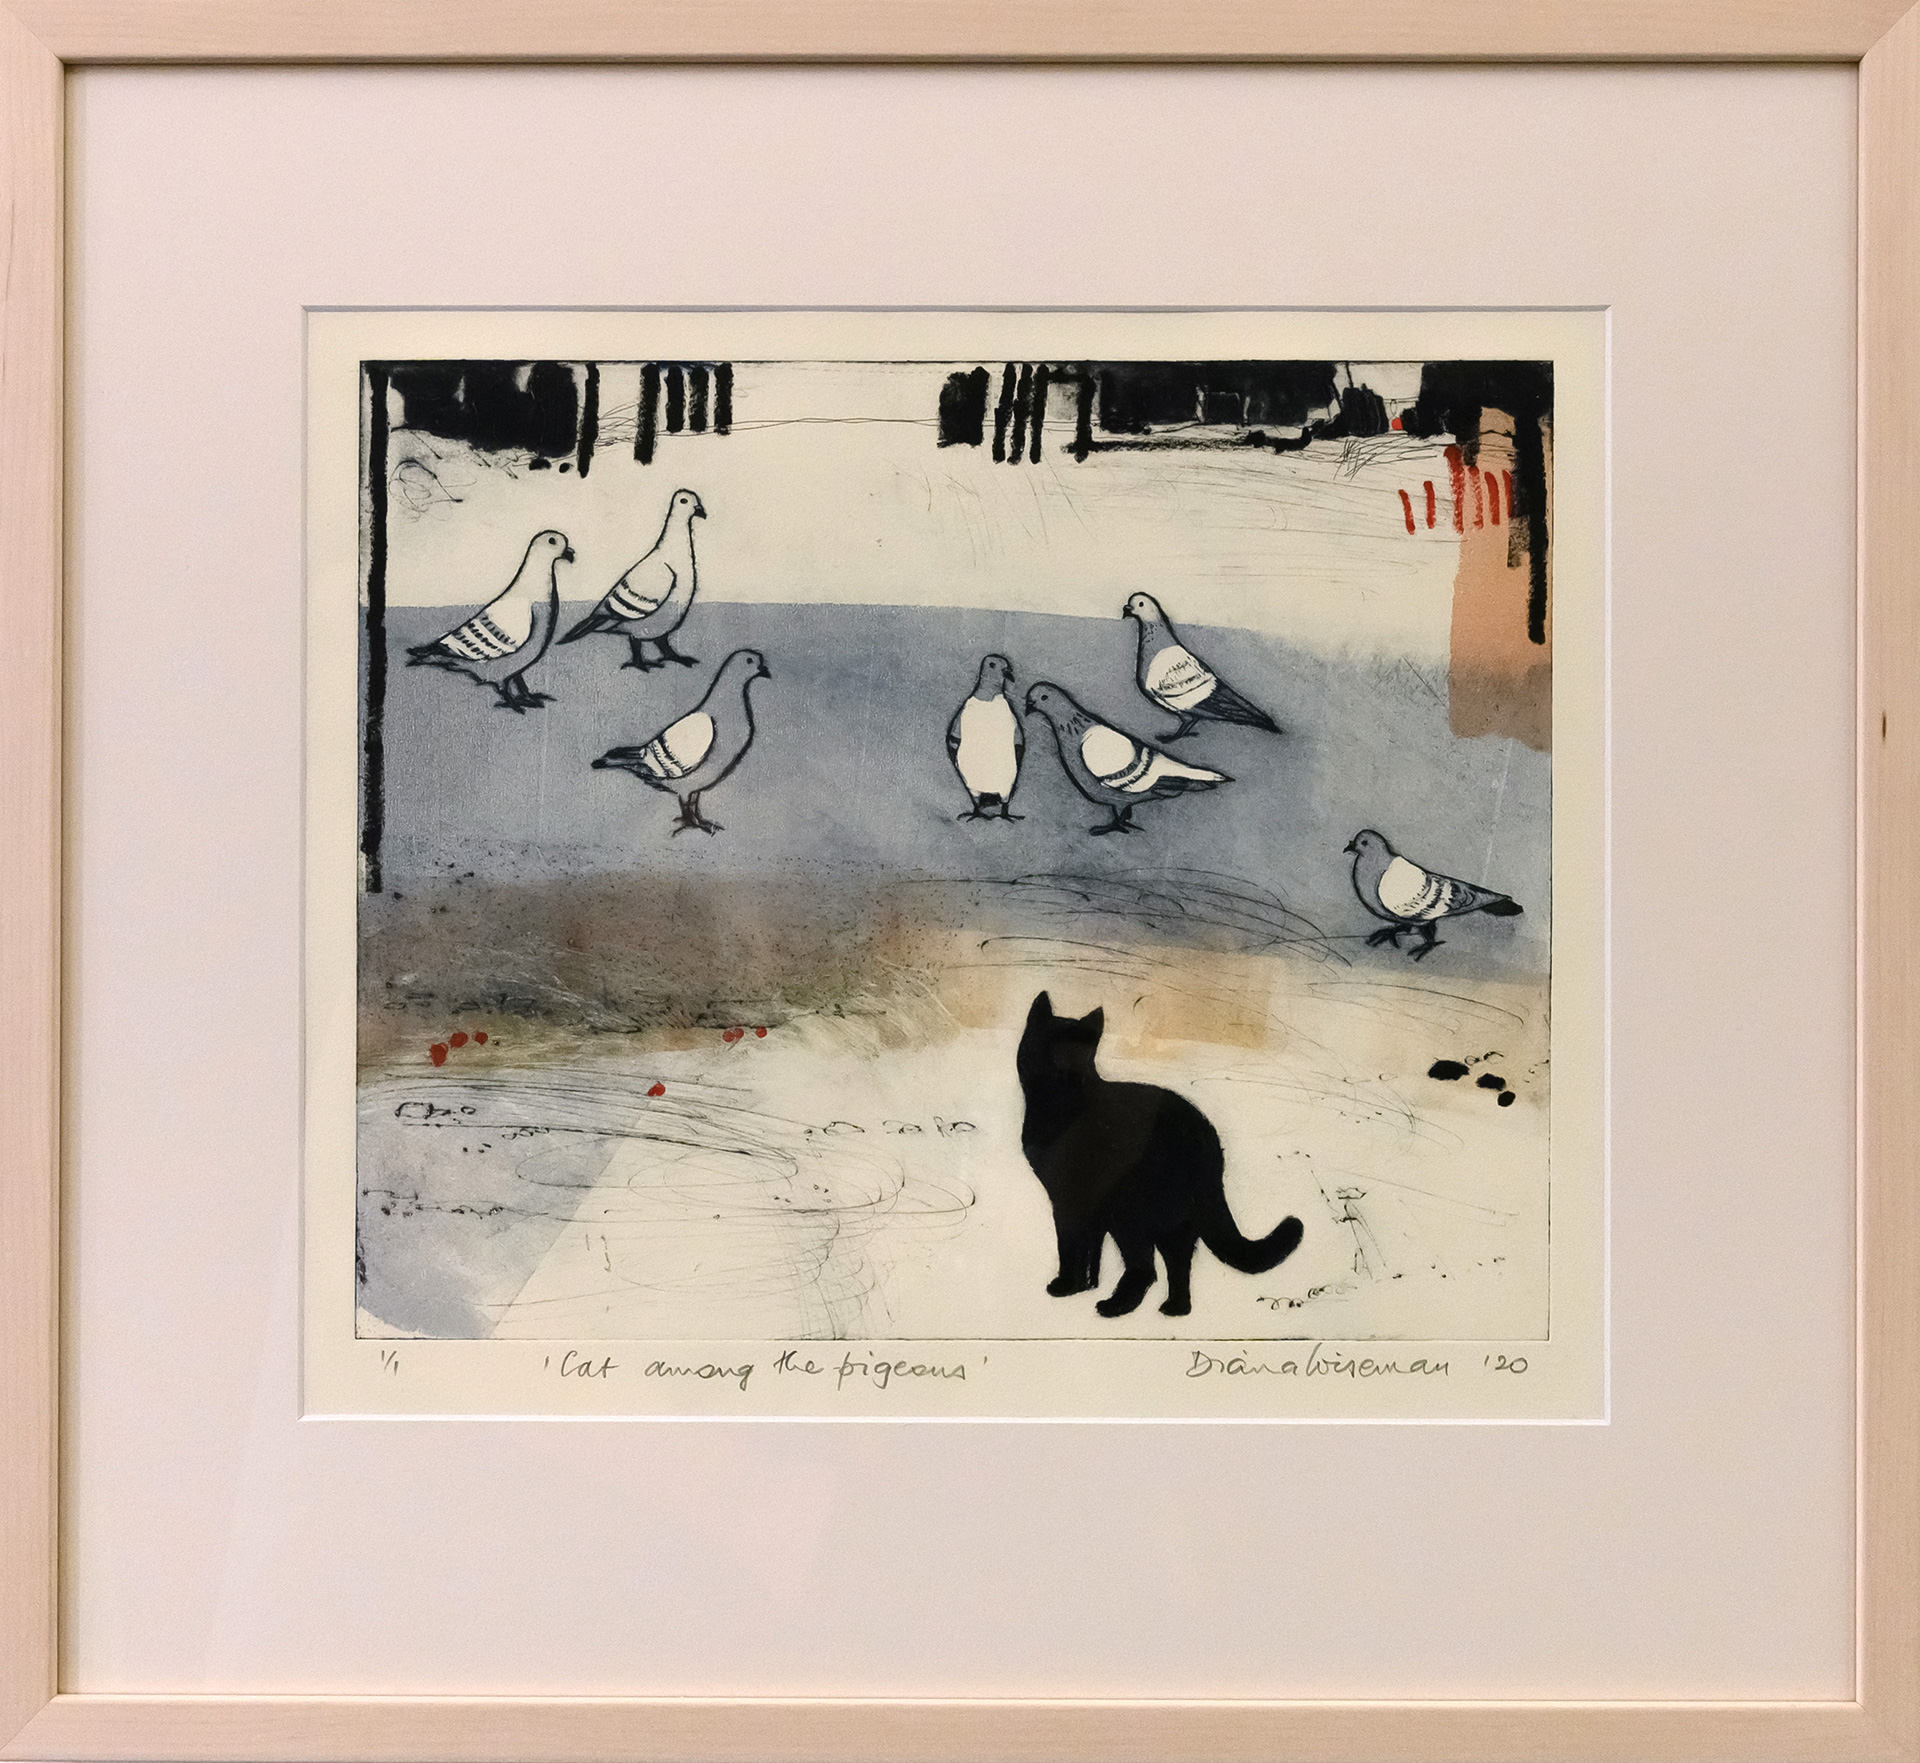 Framed artwork by Diana Wiseman of a black cat staring at a group of pigeons